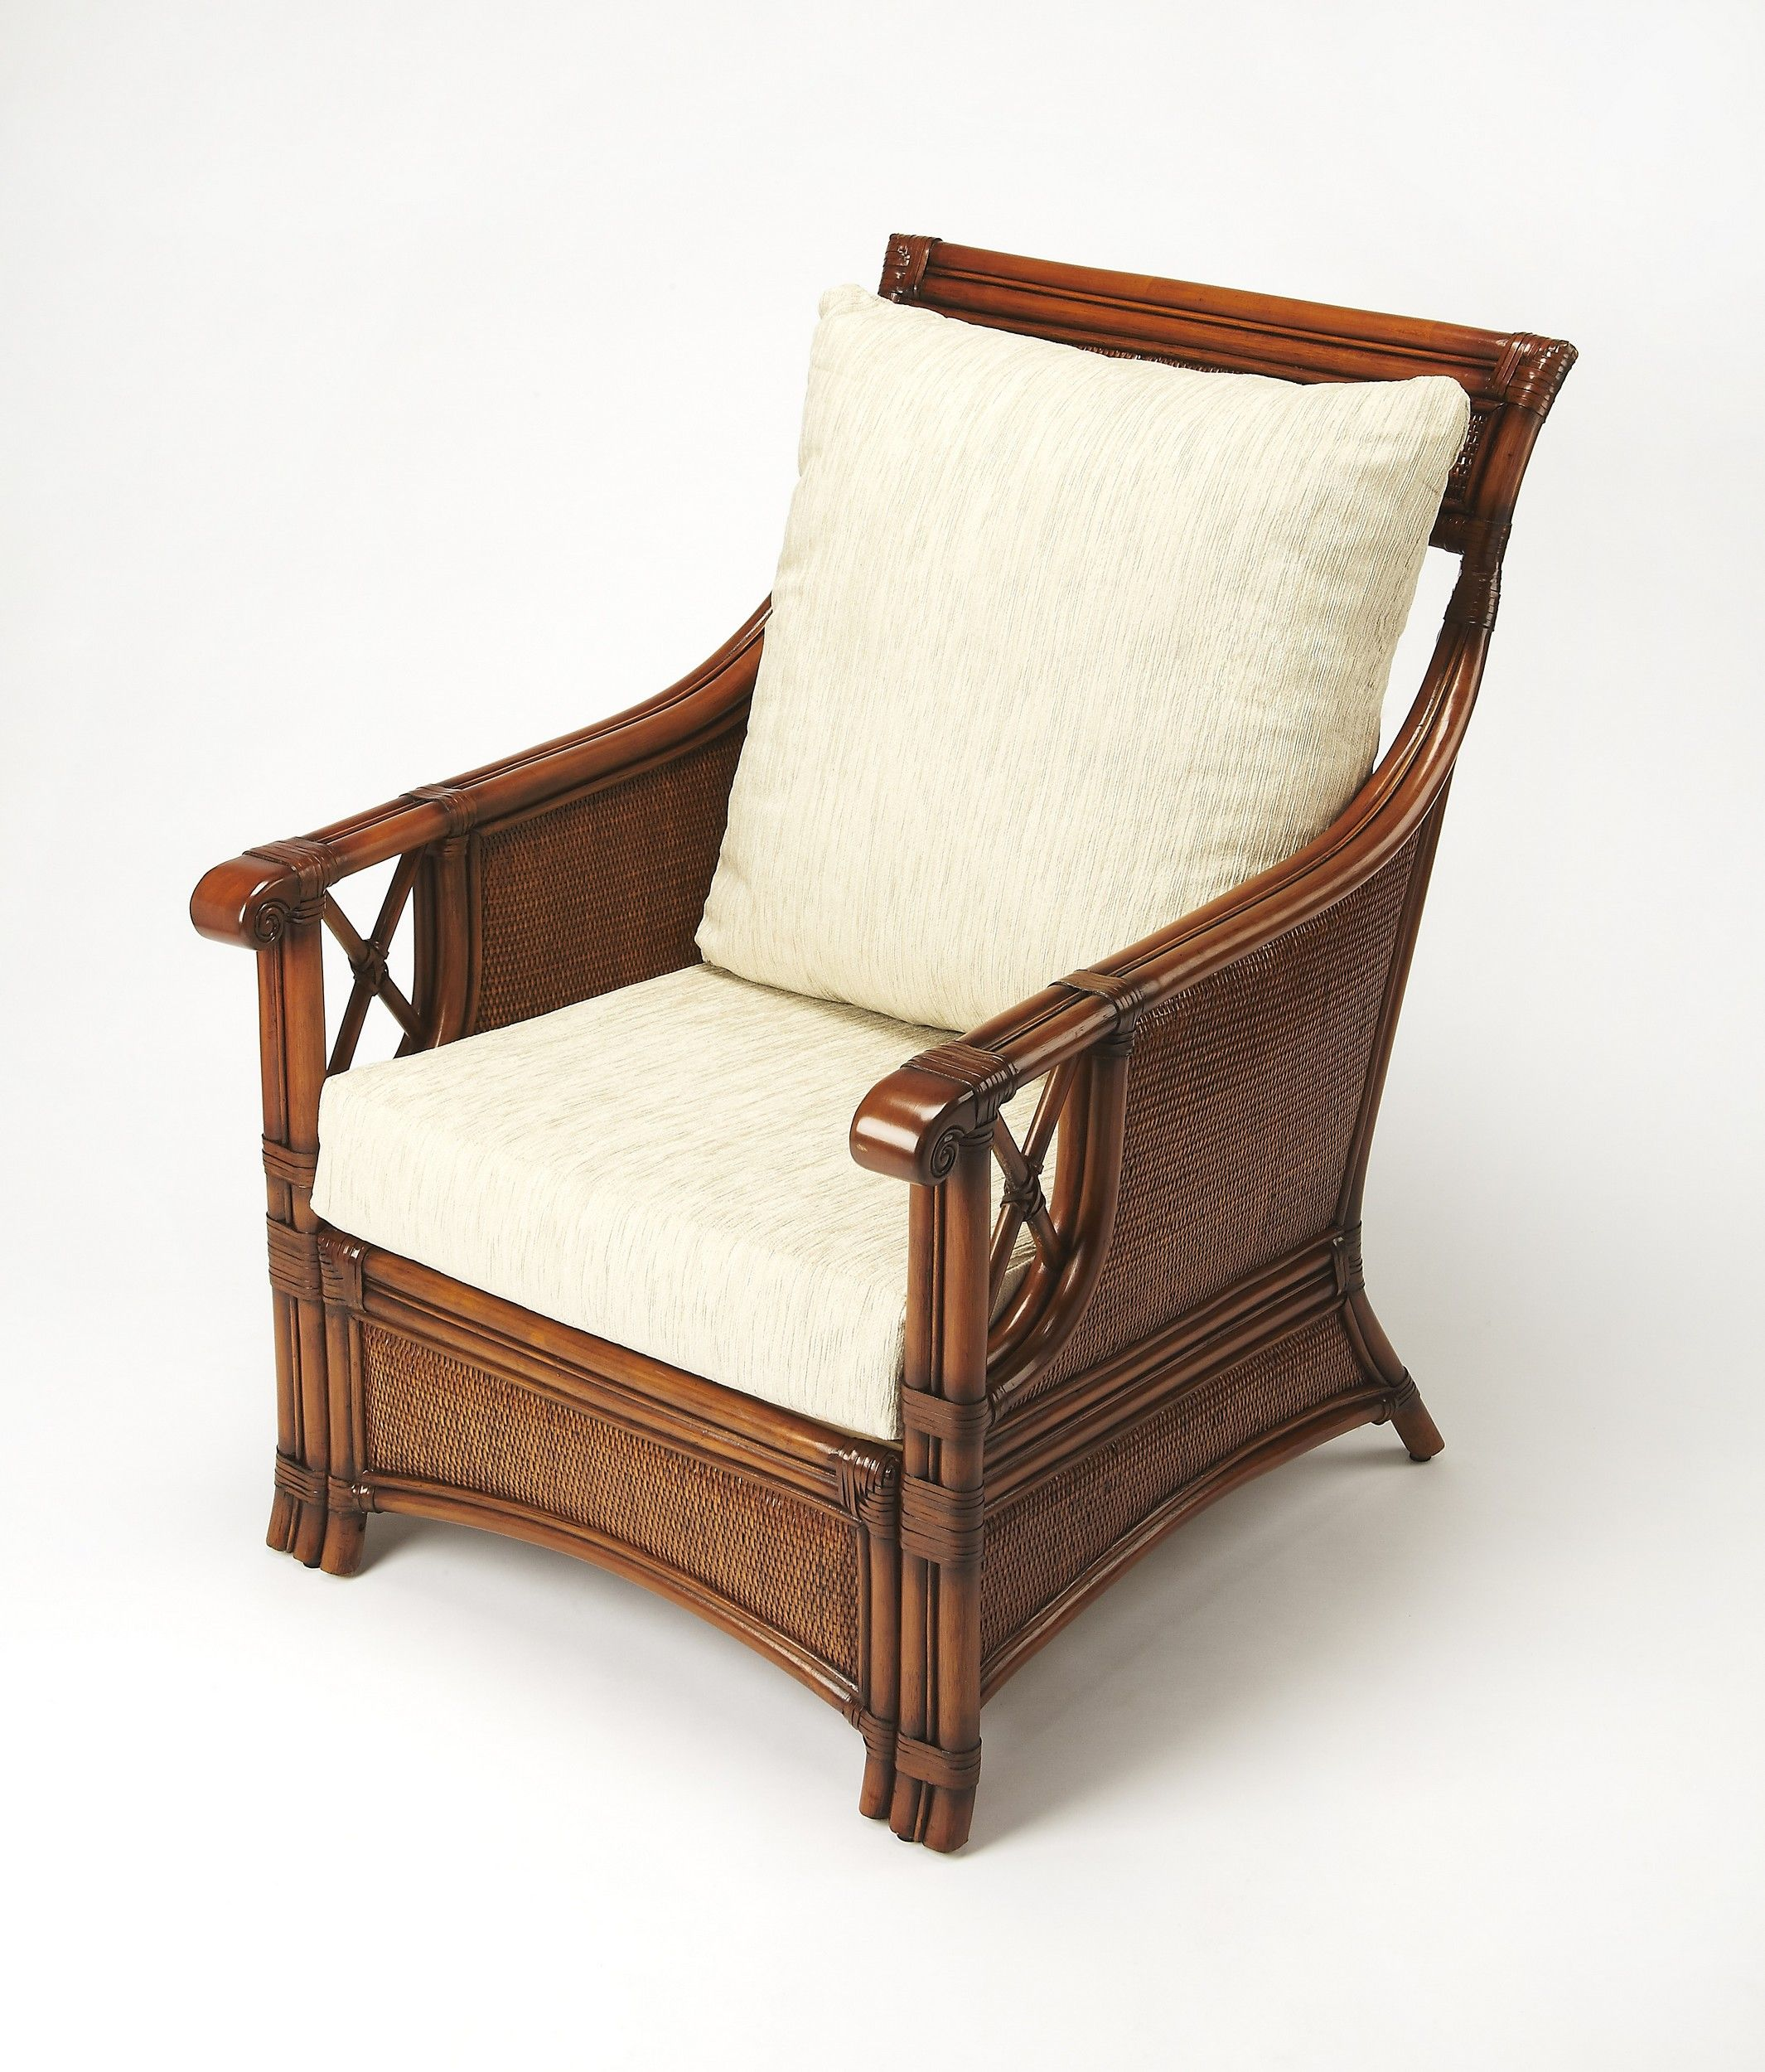 Lowest Price On Butler Specialty Arihi Rattan Club Chair 9363399 Shop Today Club Chairs Chair Rattan Chair